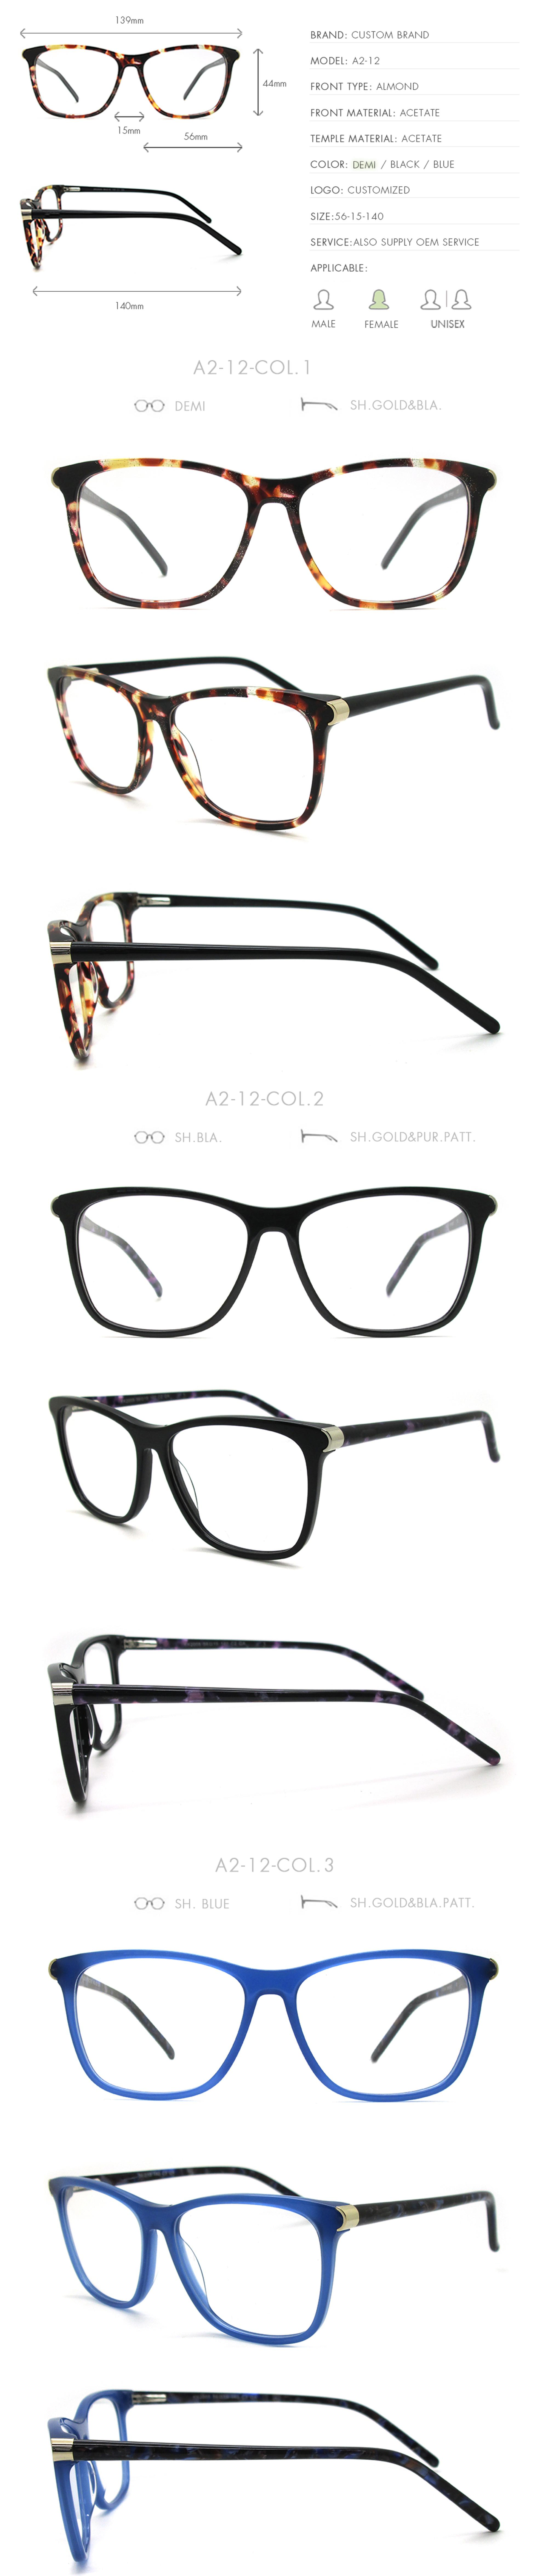 68104ad07dc A2-12 2018 Eye Glasses Acetate Women Optical Frames Factory Manufacturer  Eyewear Decorative Spectacle Eyeglasses